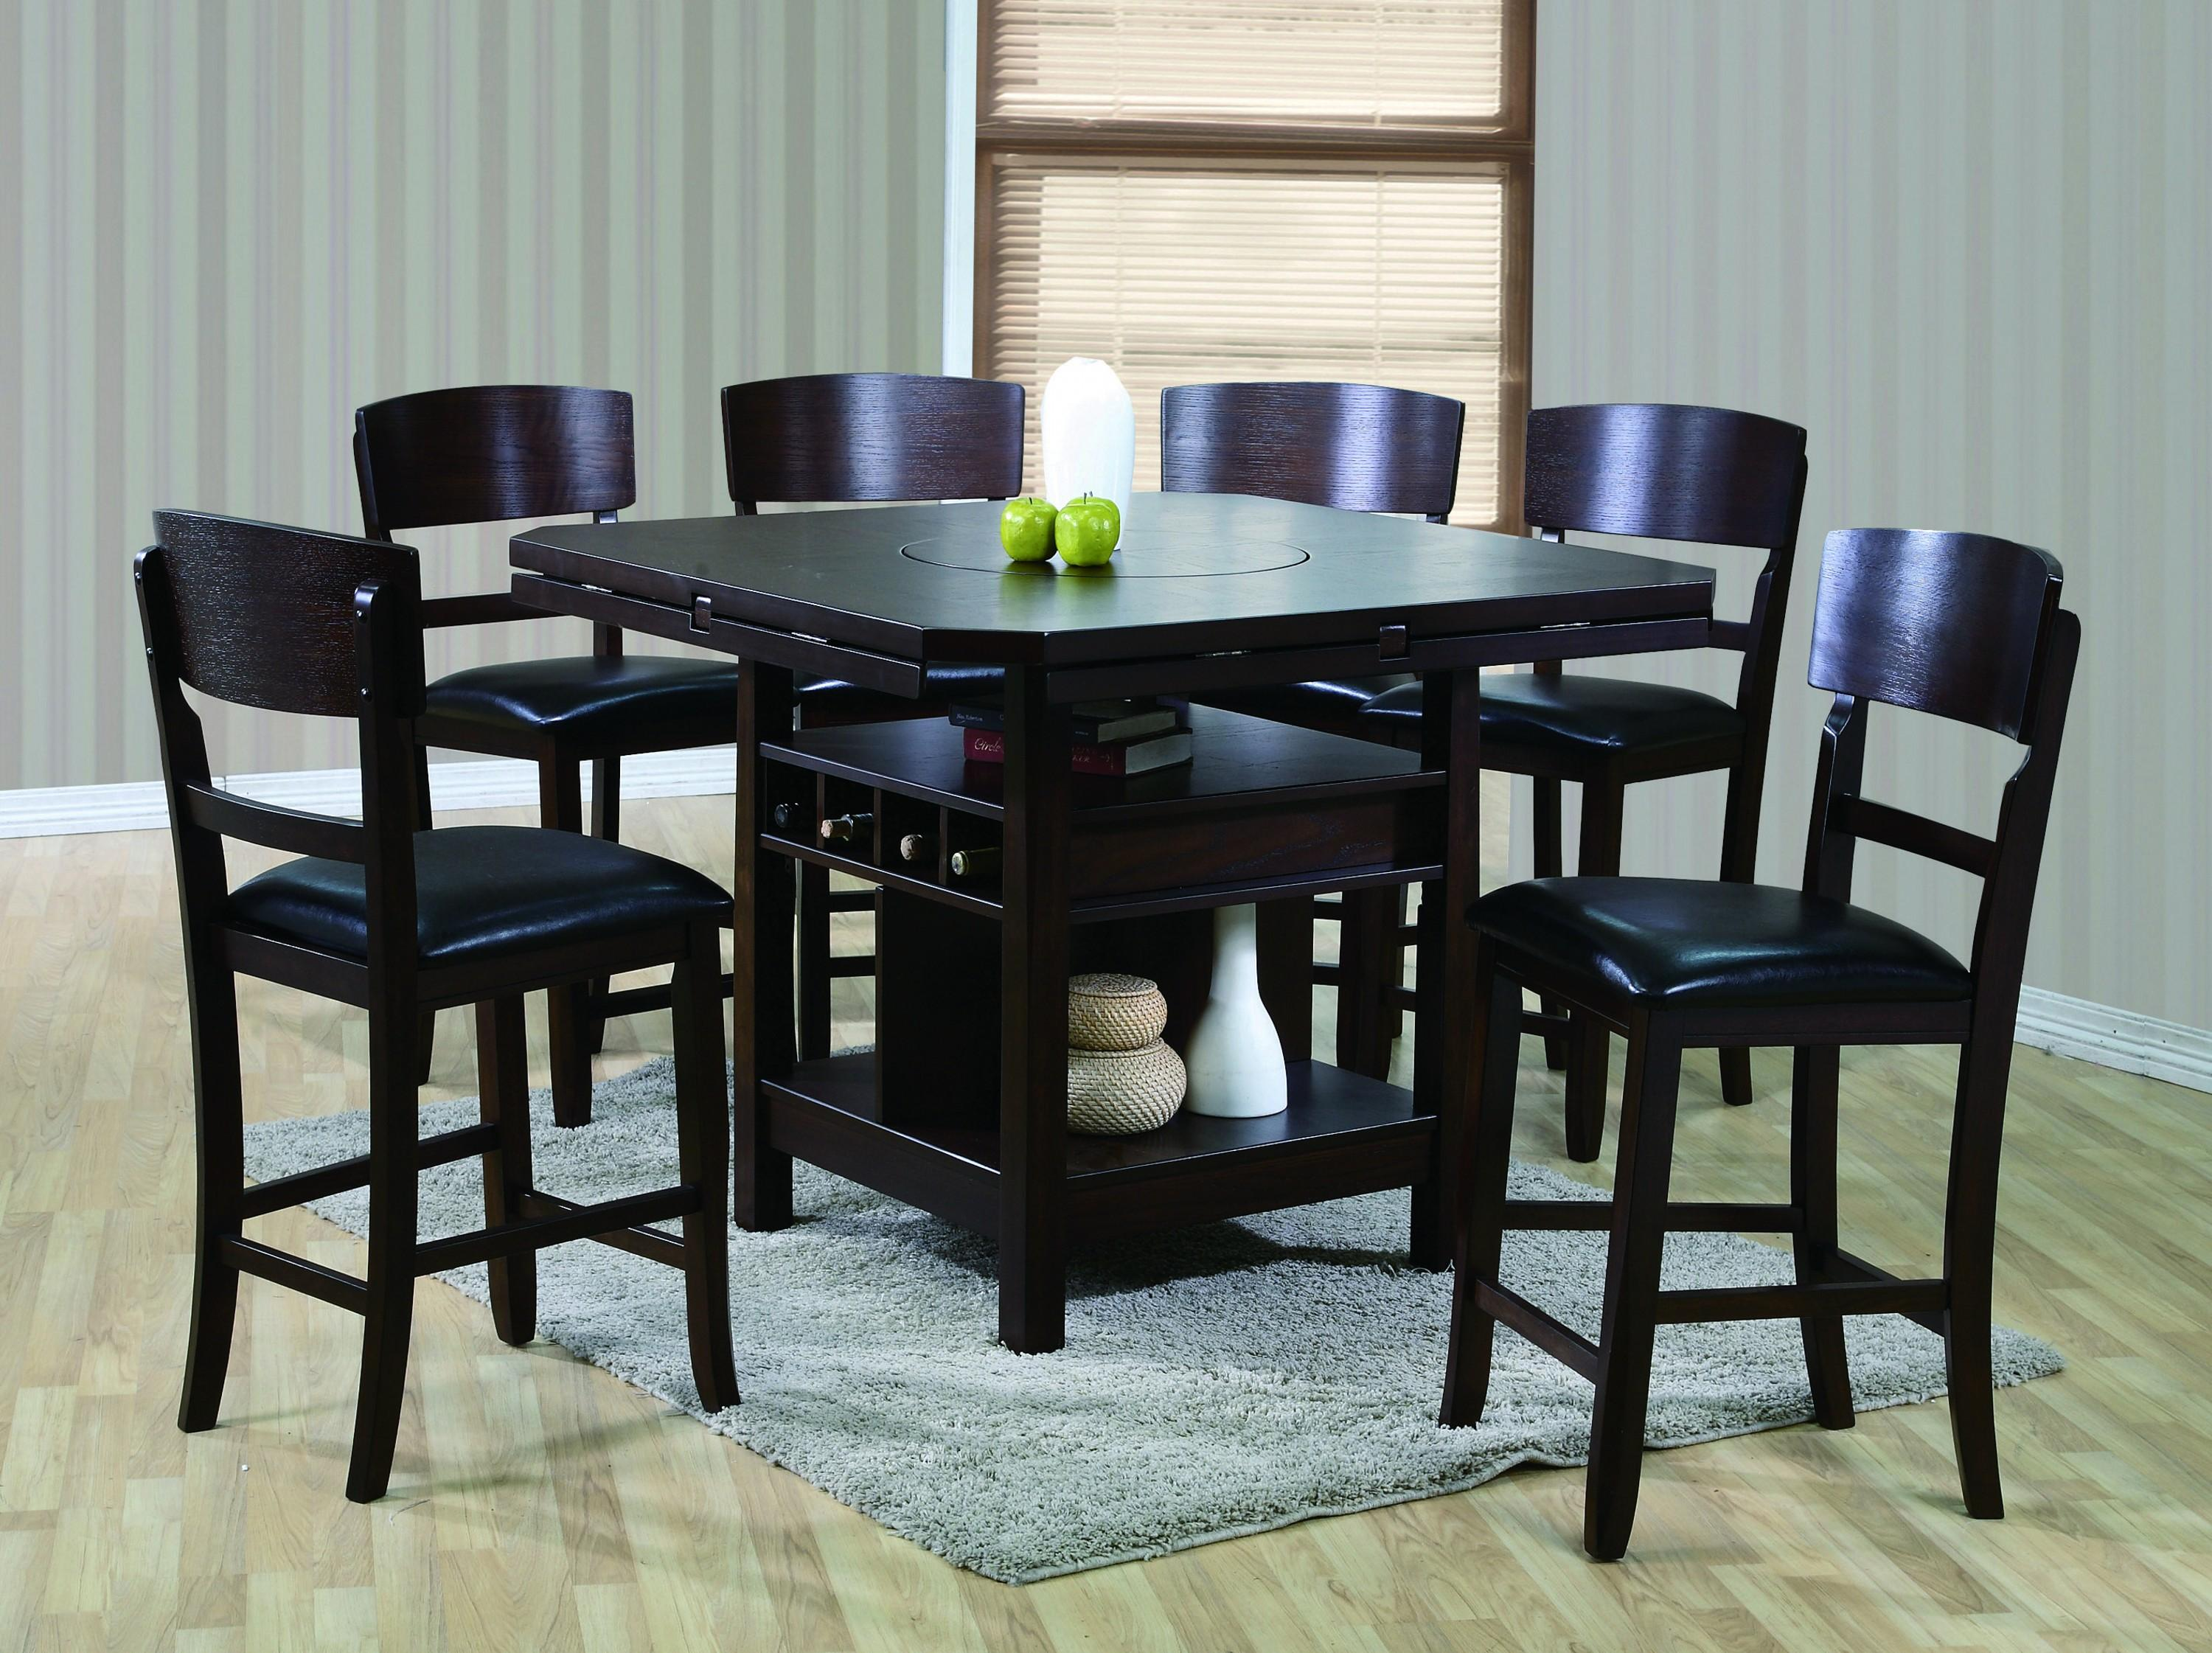 7 Couter Height Table 6 Chairs Uph Espresso | Hot Sectionals on 60's dining room sets, living room table sets, 60's bedroom sets, 60's furniture, 60's chairs,